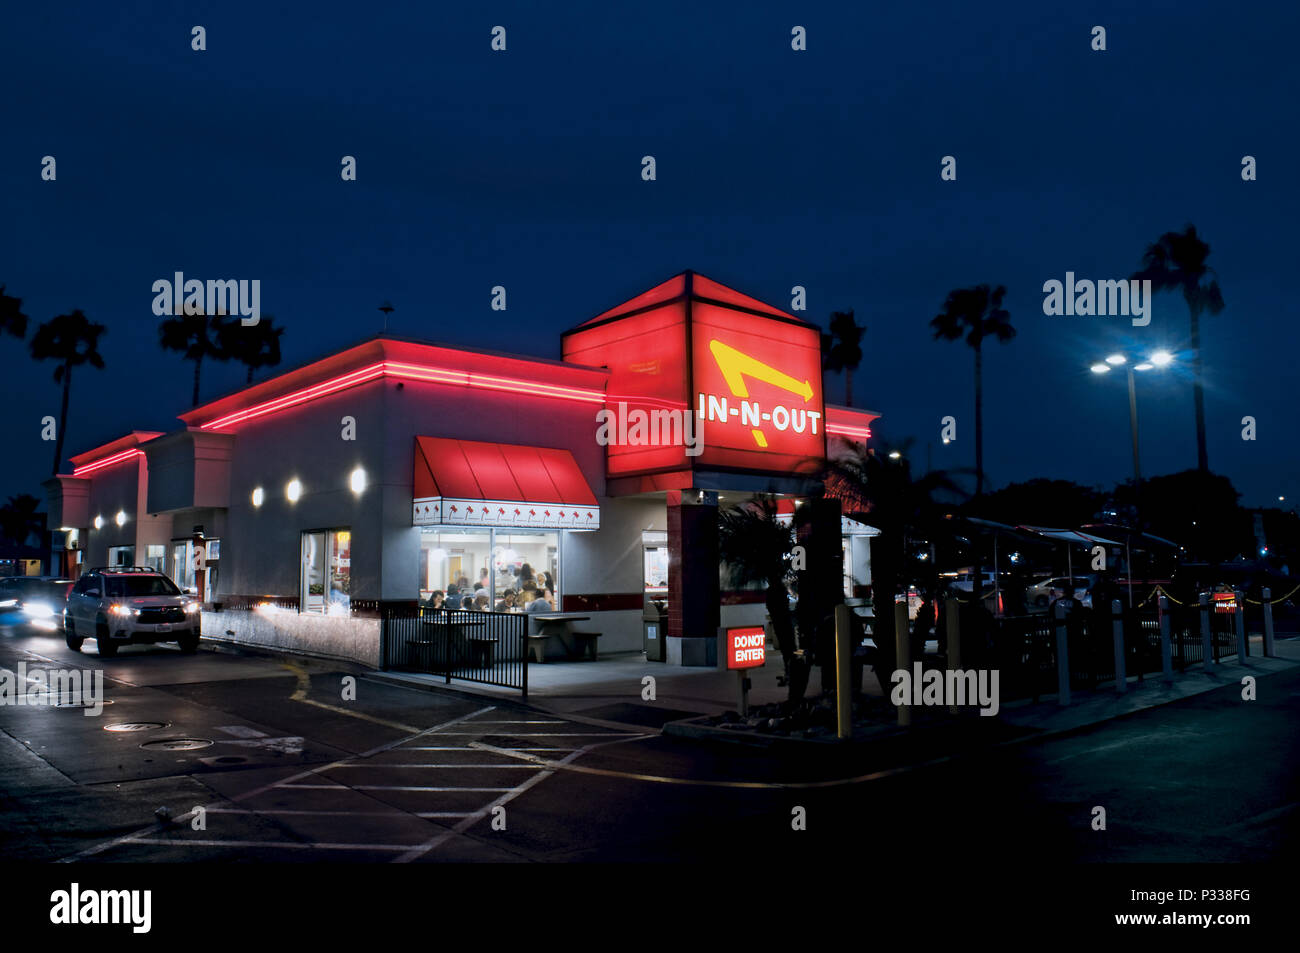 In-N-Out Restaurant am Flughafen LAX Los Angeles, Kalifornien Stockbild